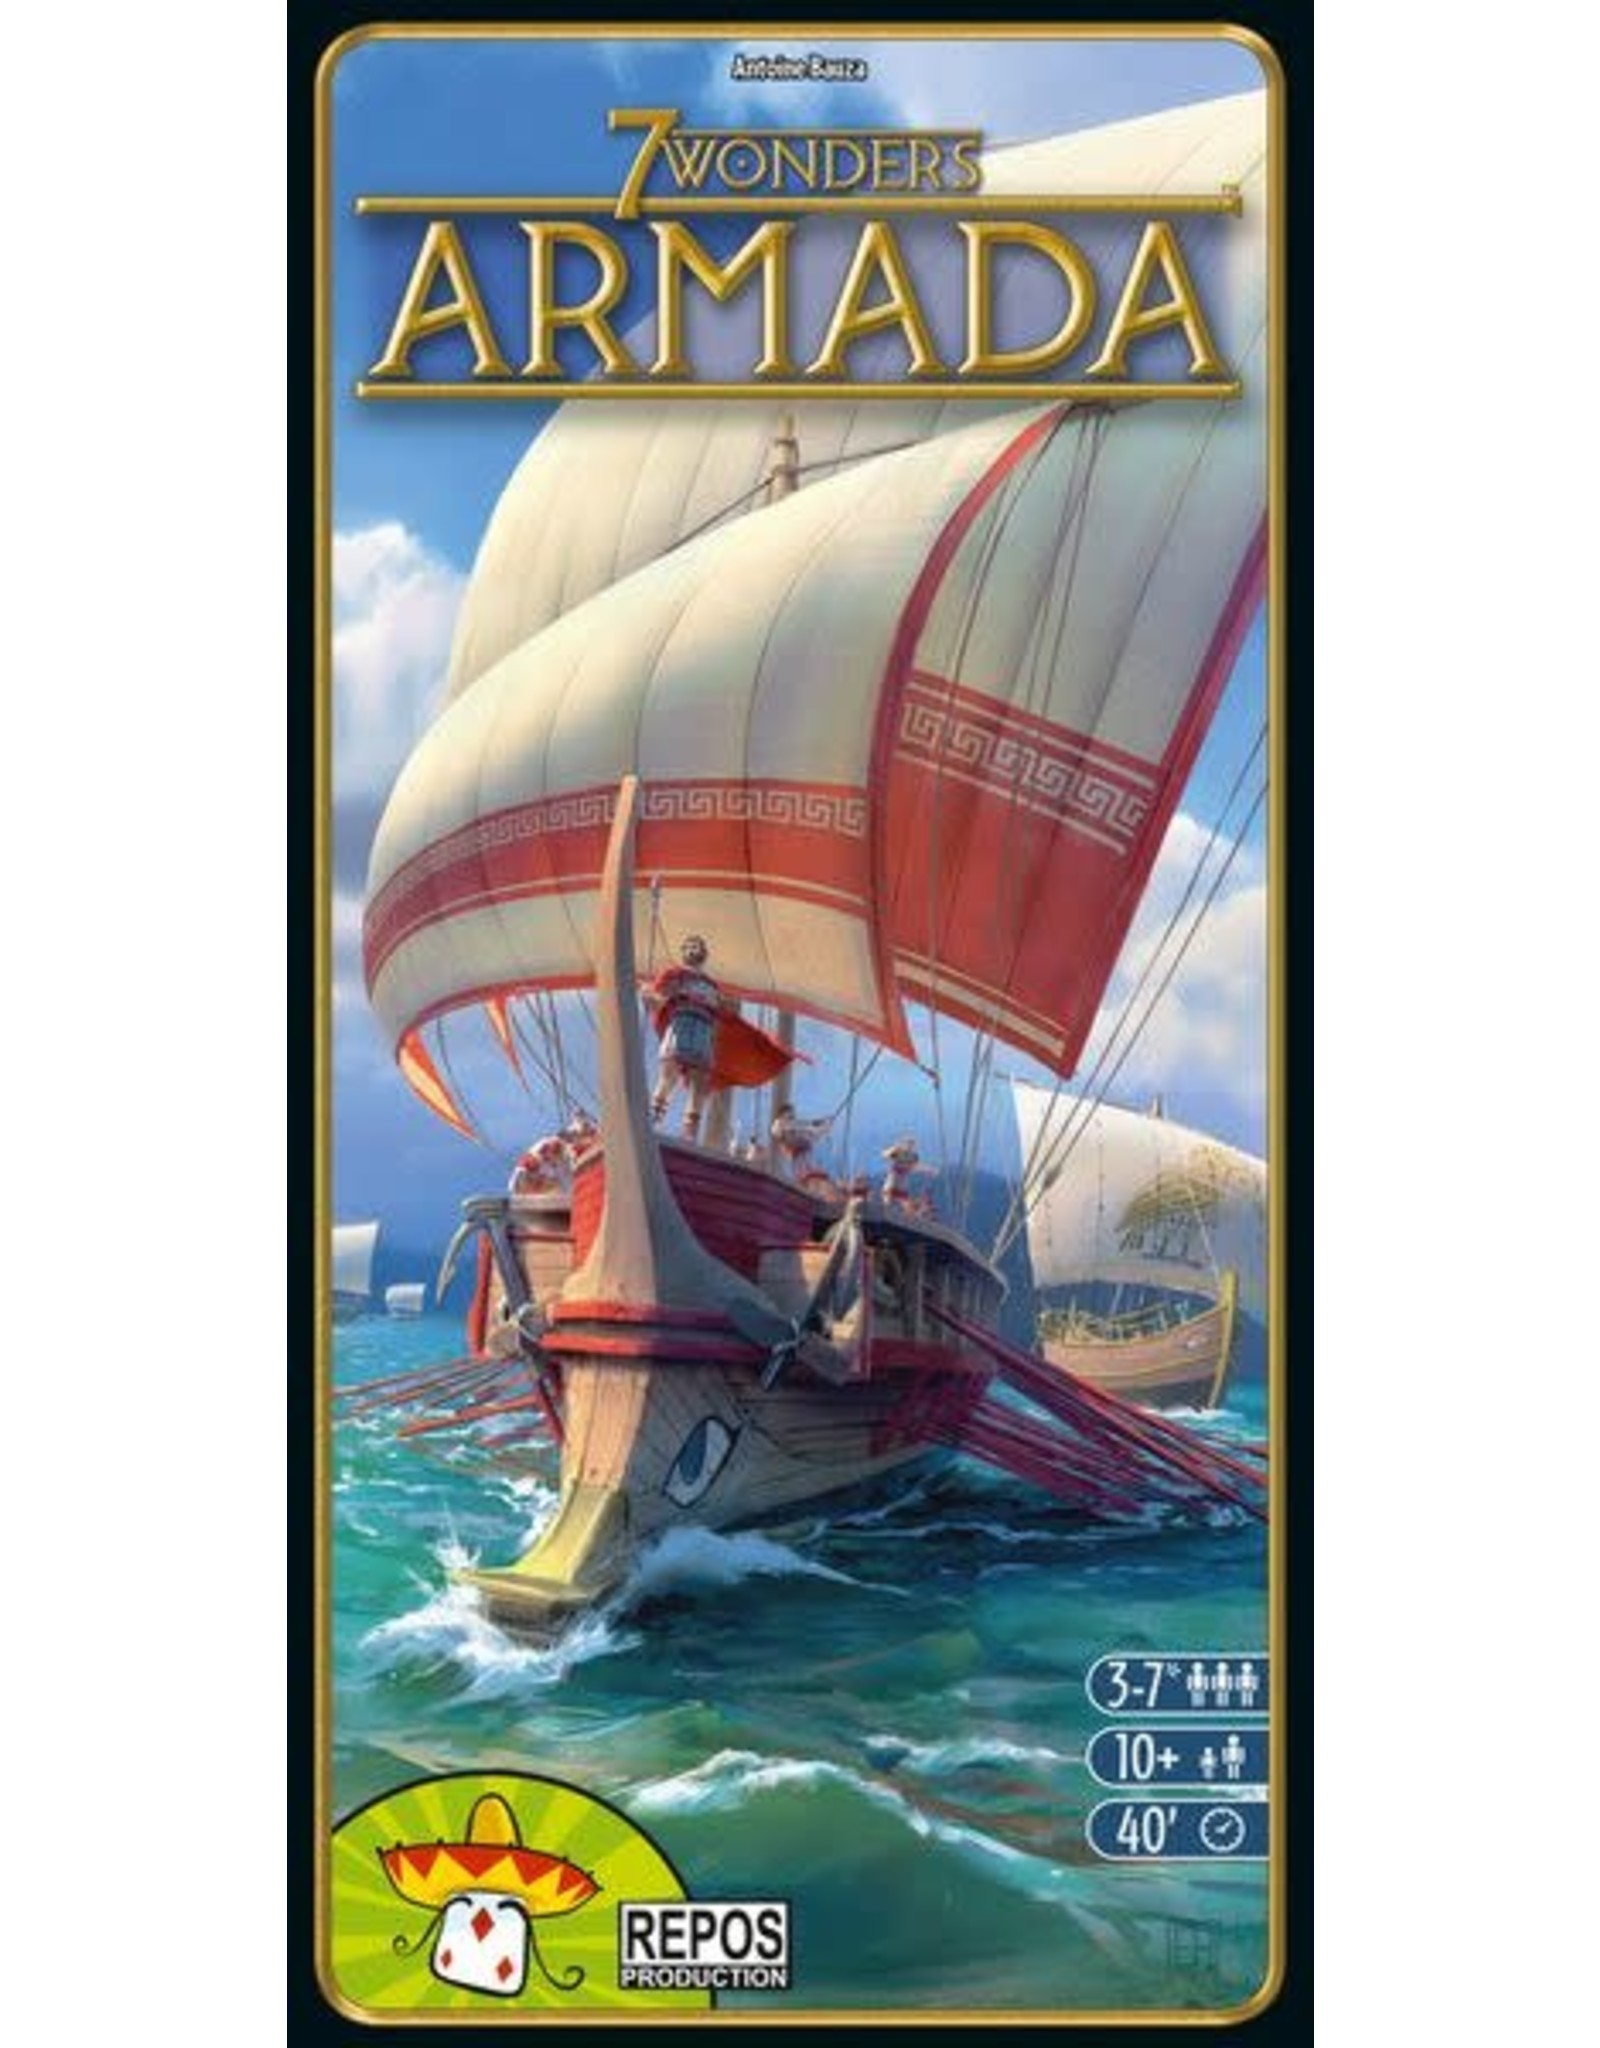 Repos Productions 7 Wonders Armada